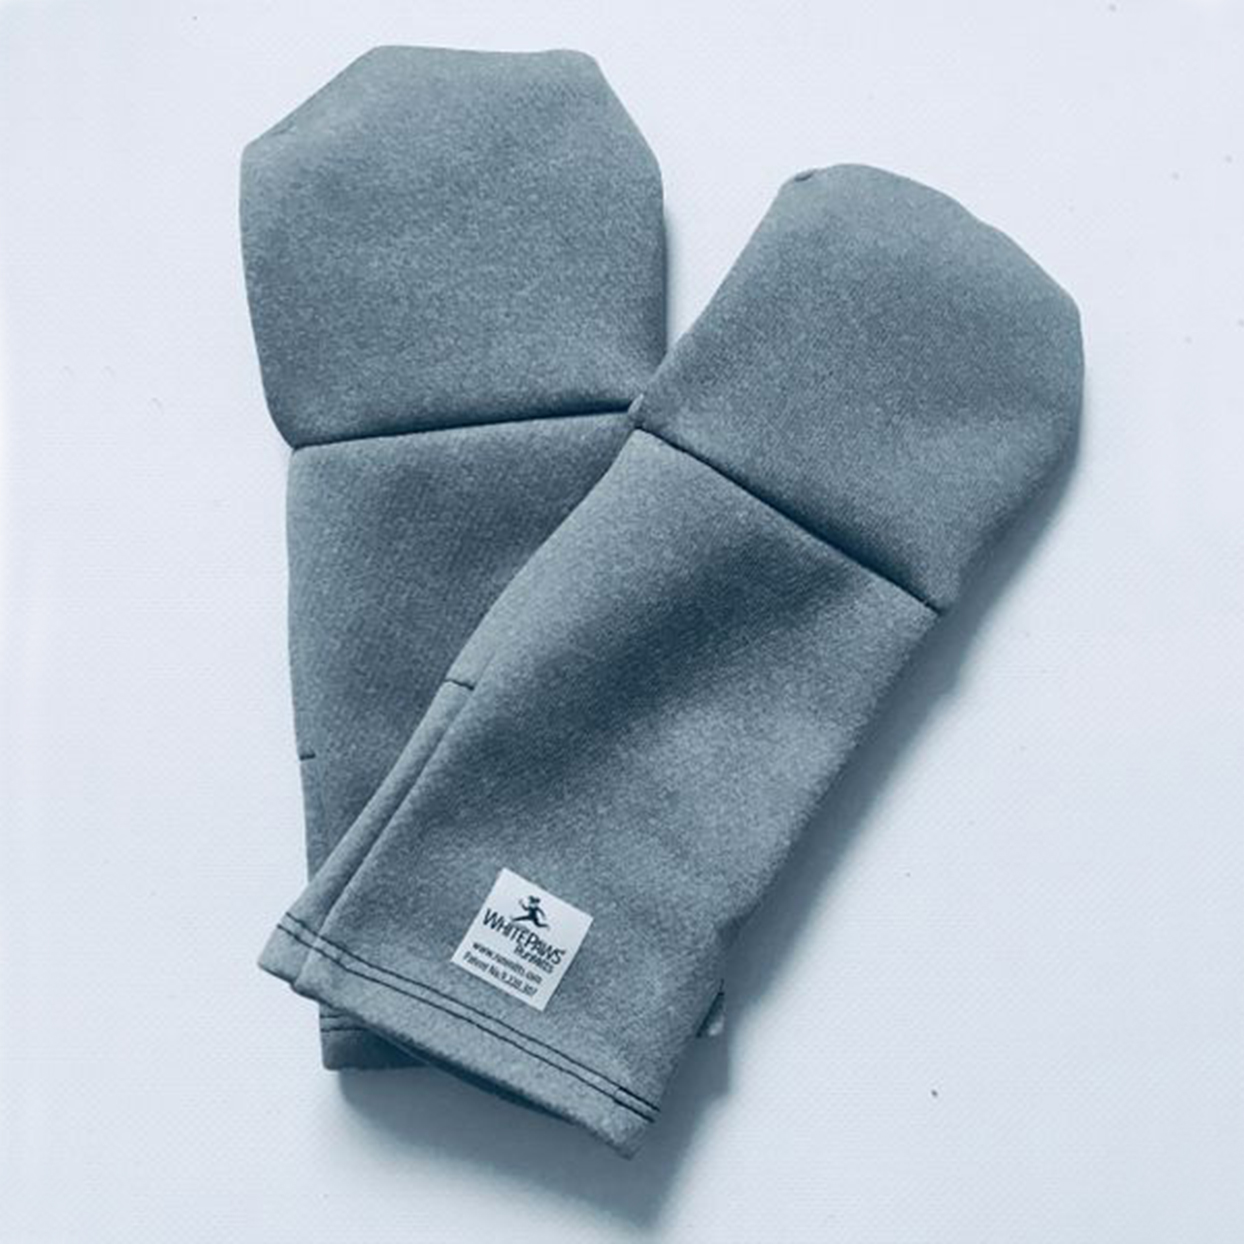 This convertible pair transitions from running gloves to mittens. Each pair has an inner pocket where you can store a hand warmer on the most frigid days.